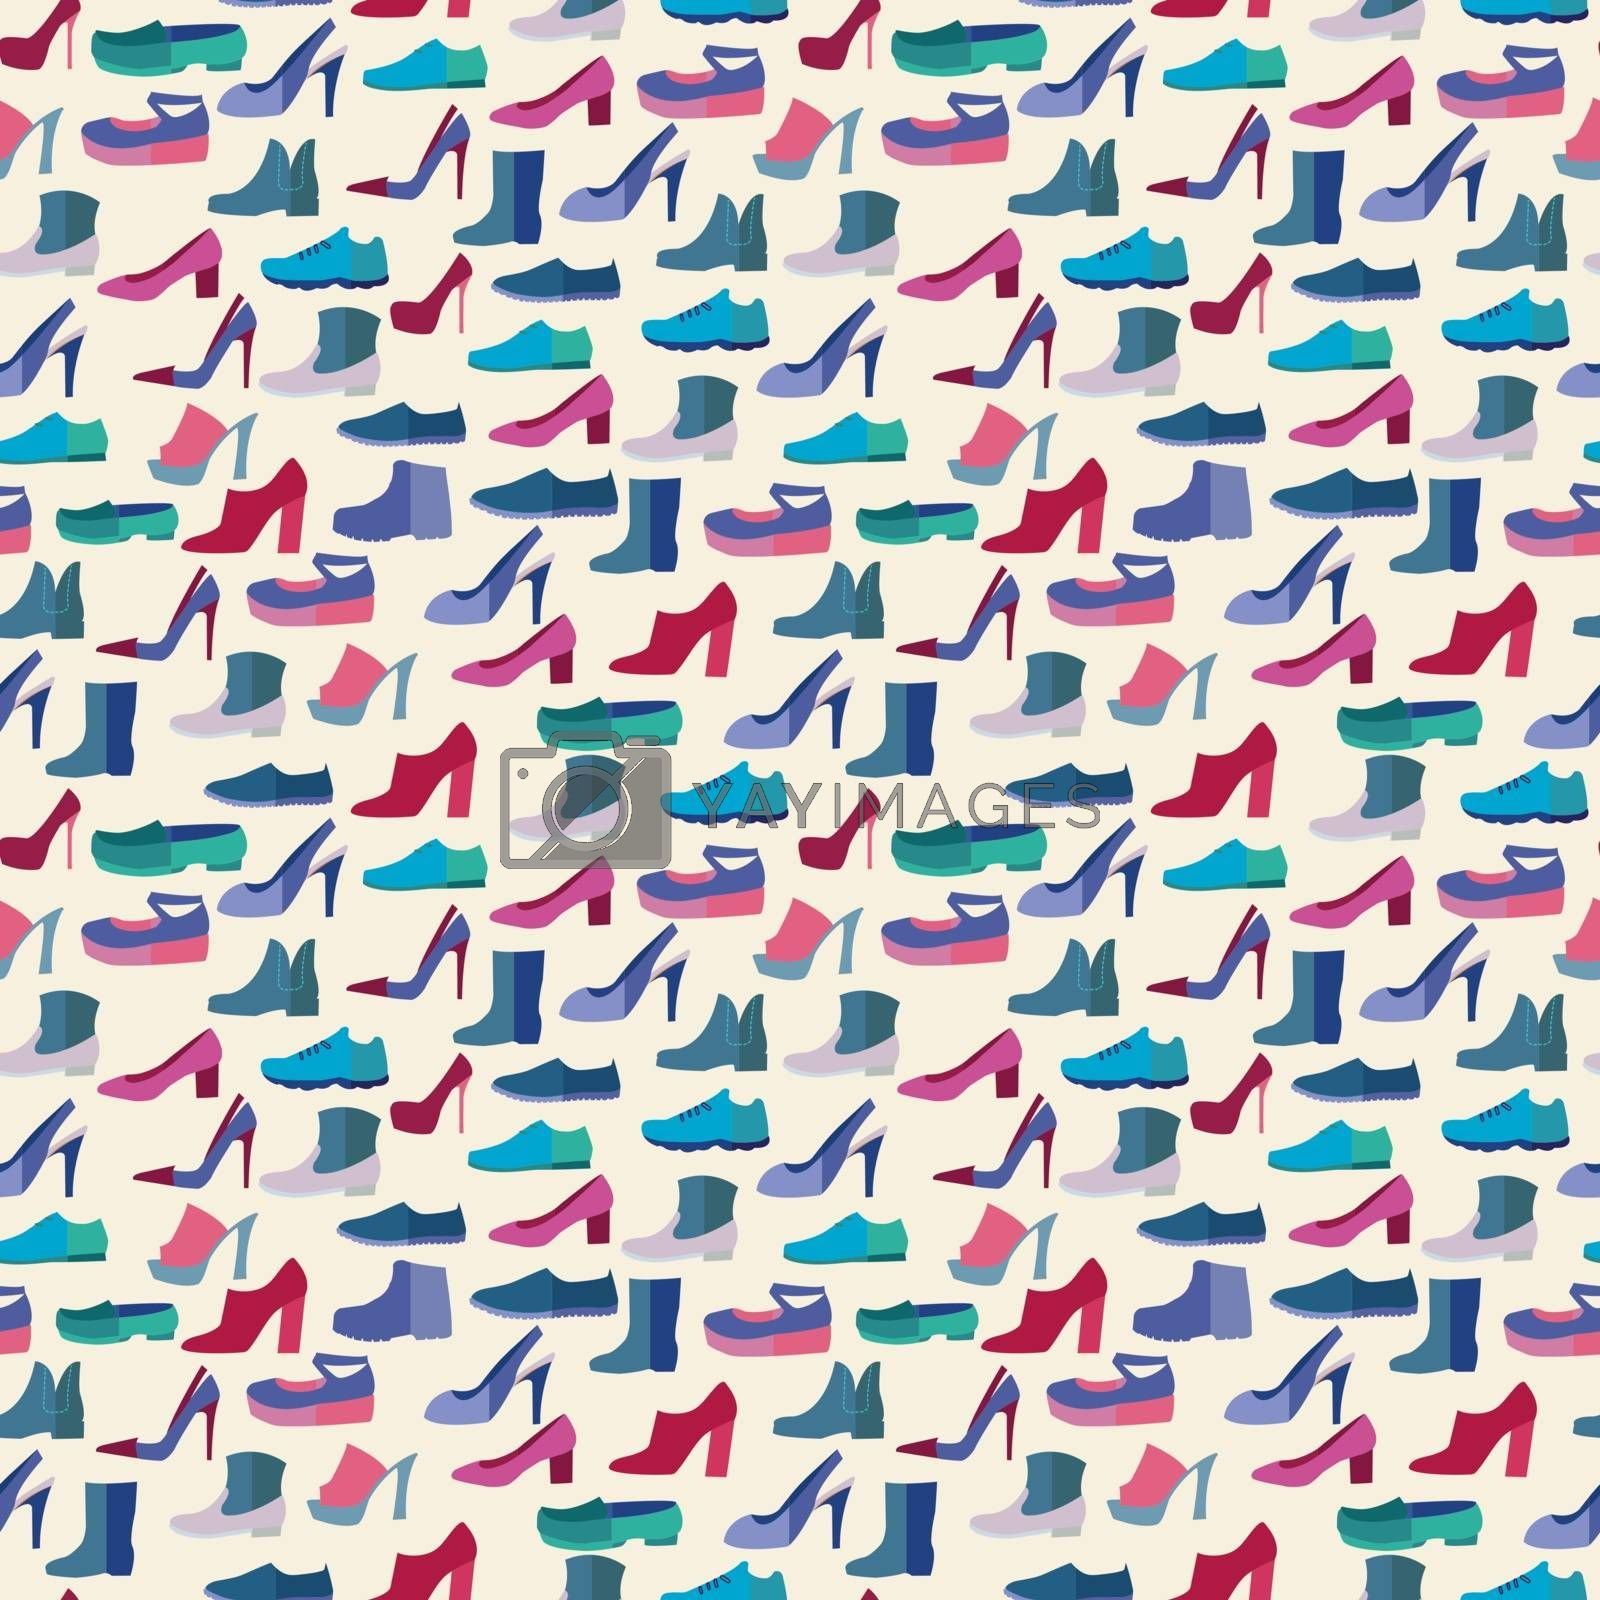 Set of Vector shoes fashion collection seamless pattern.  background of Different types of male and female shoes in flat